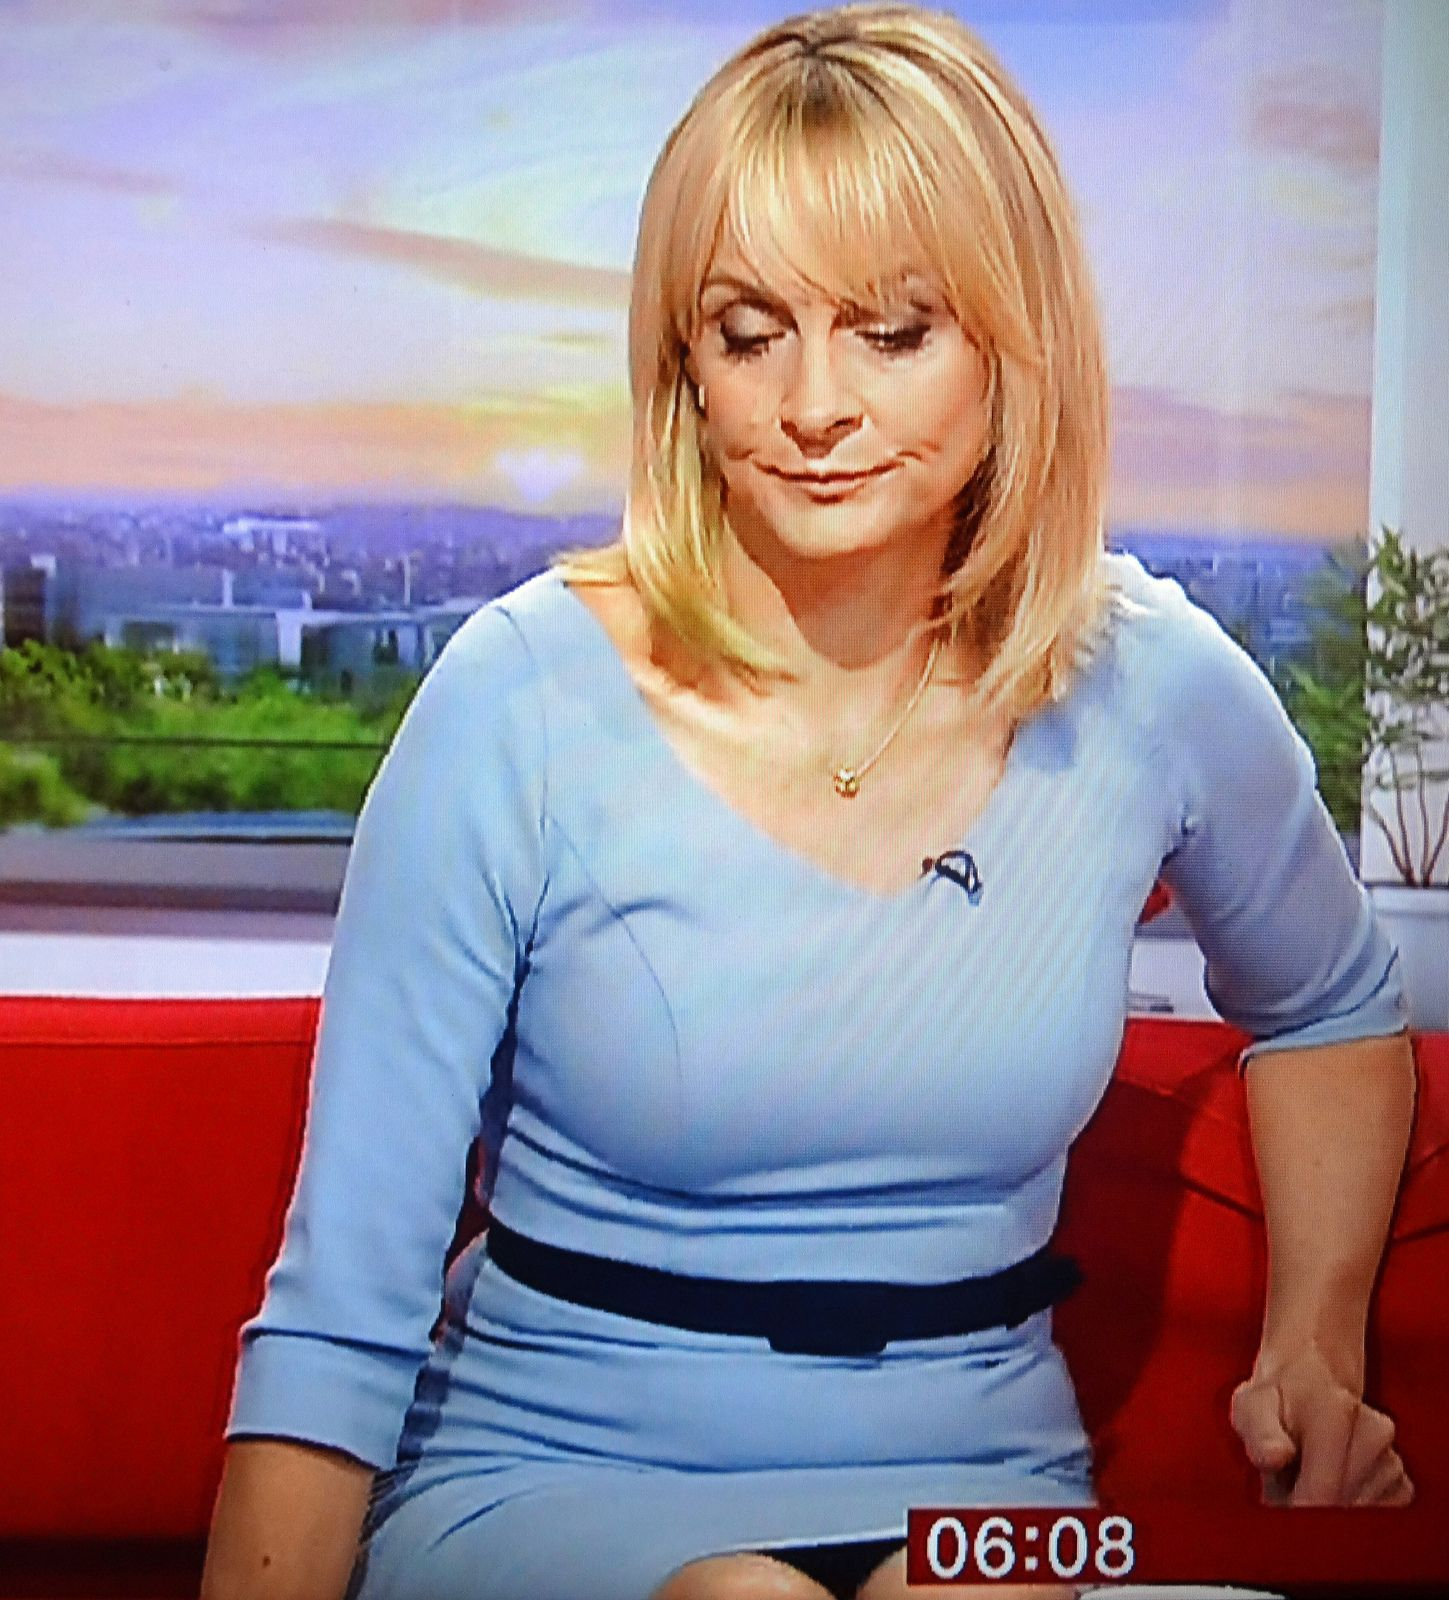 Louise Minchin Celebrities Female Cafe Racer Girl Bbc Presenters